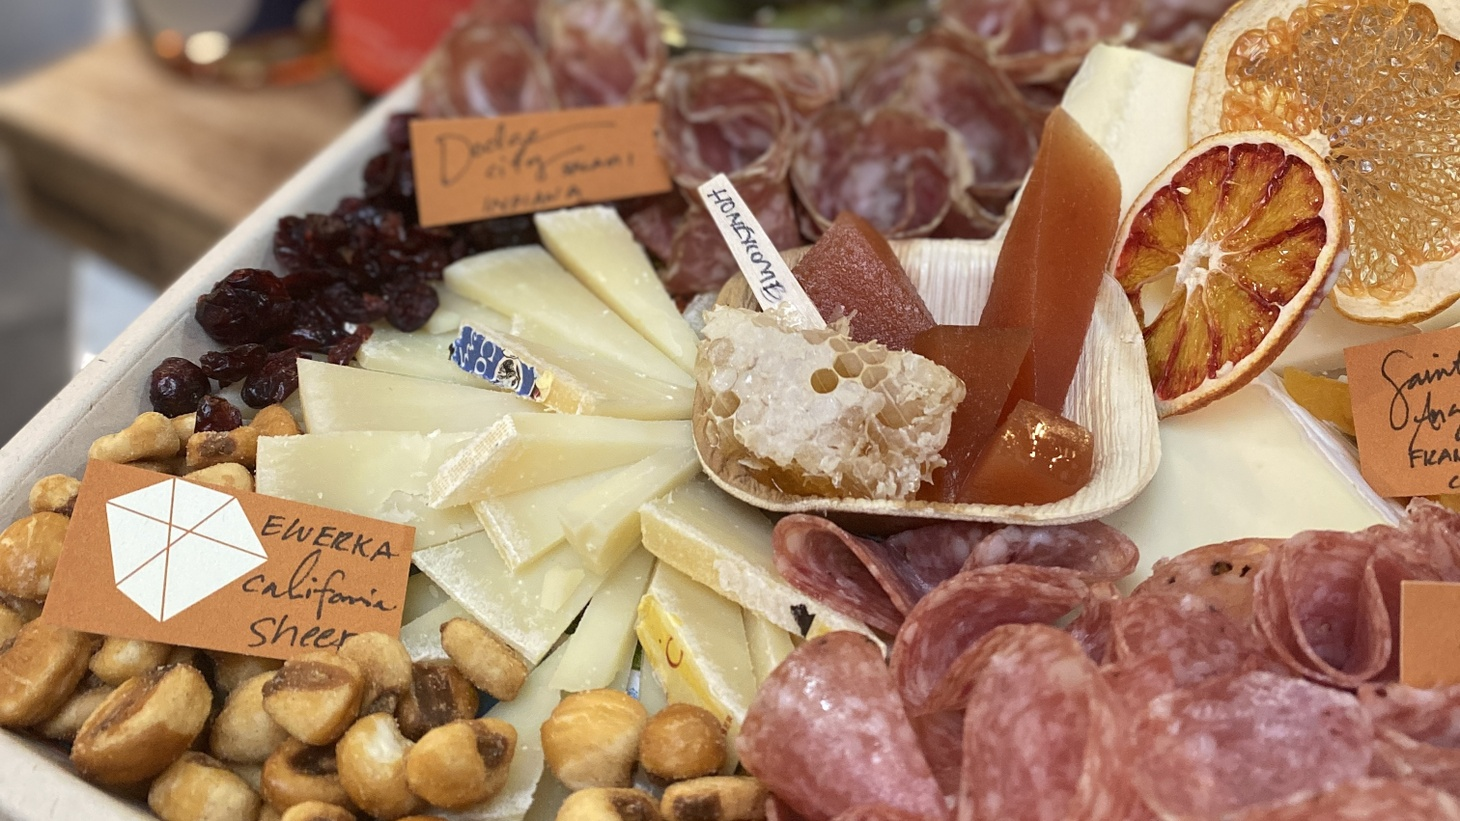 Why not build a cheese board for watching the Oscars this Sunday? You can find all sorts of cheeses at DTLA Cheese — or other local specialty stores.